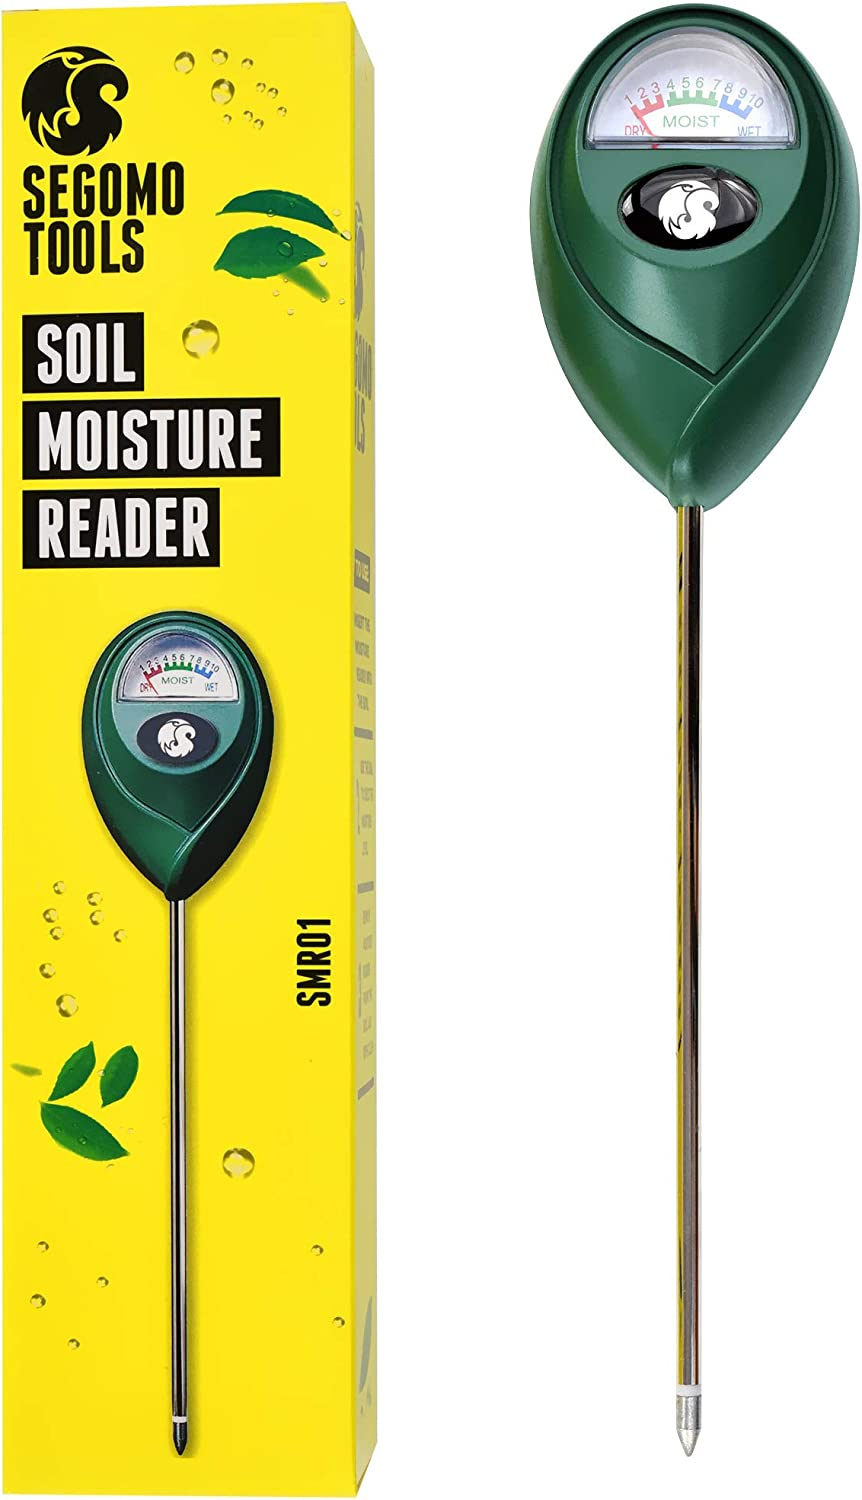 Segomo Tools Soil Moisture Hygrometer Sensor & Reader (for Gardening, Plants, Lawns, Farms) - SMR01